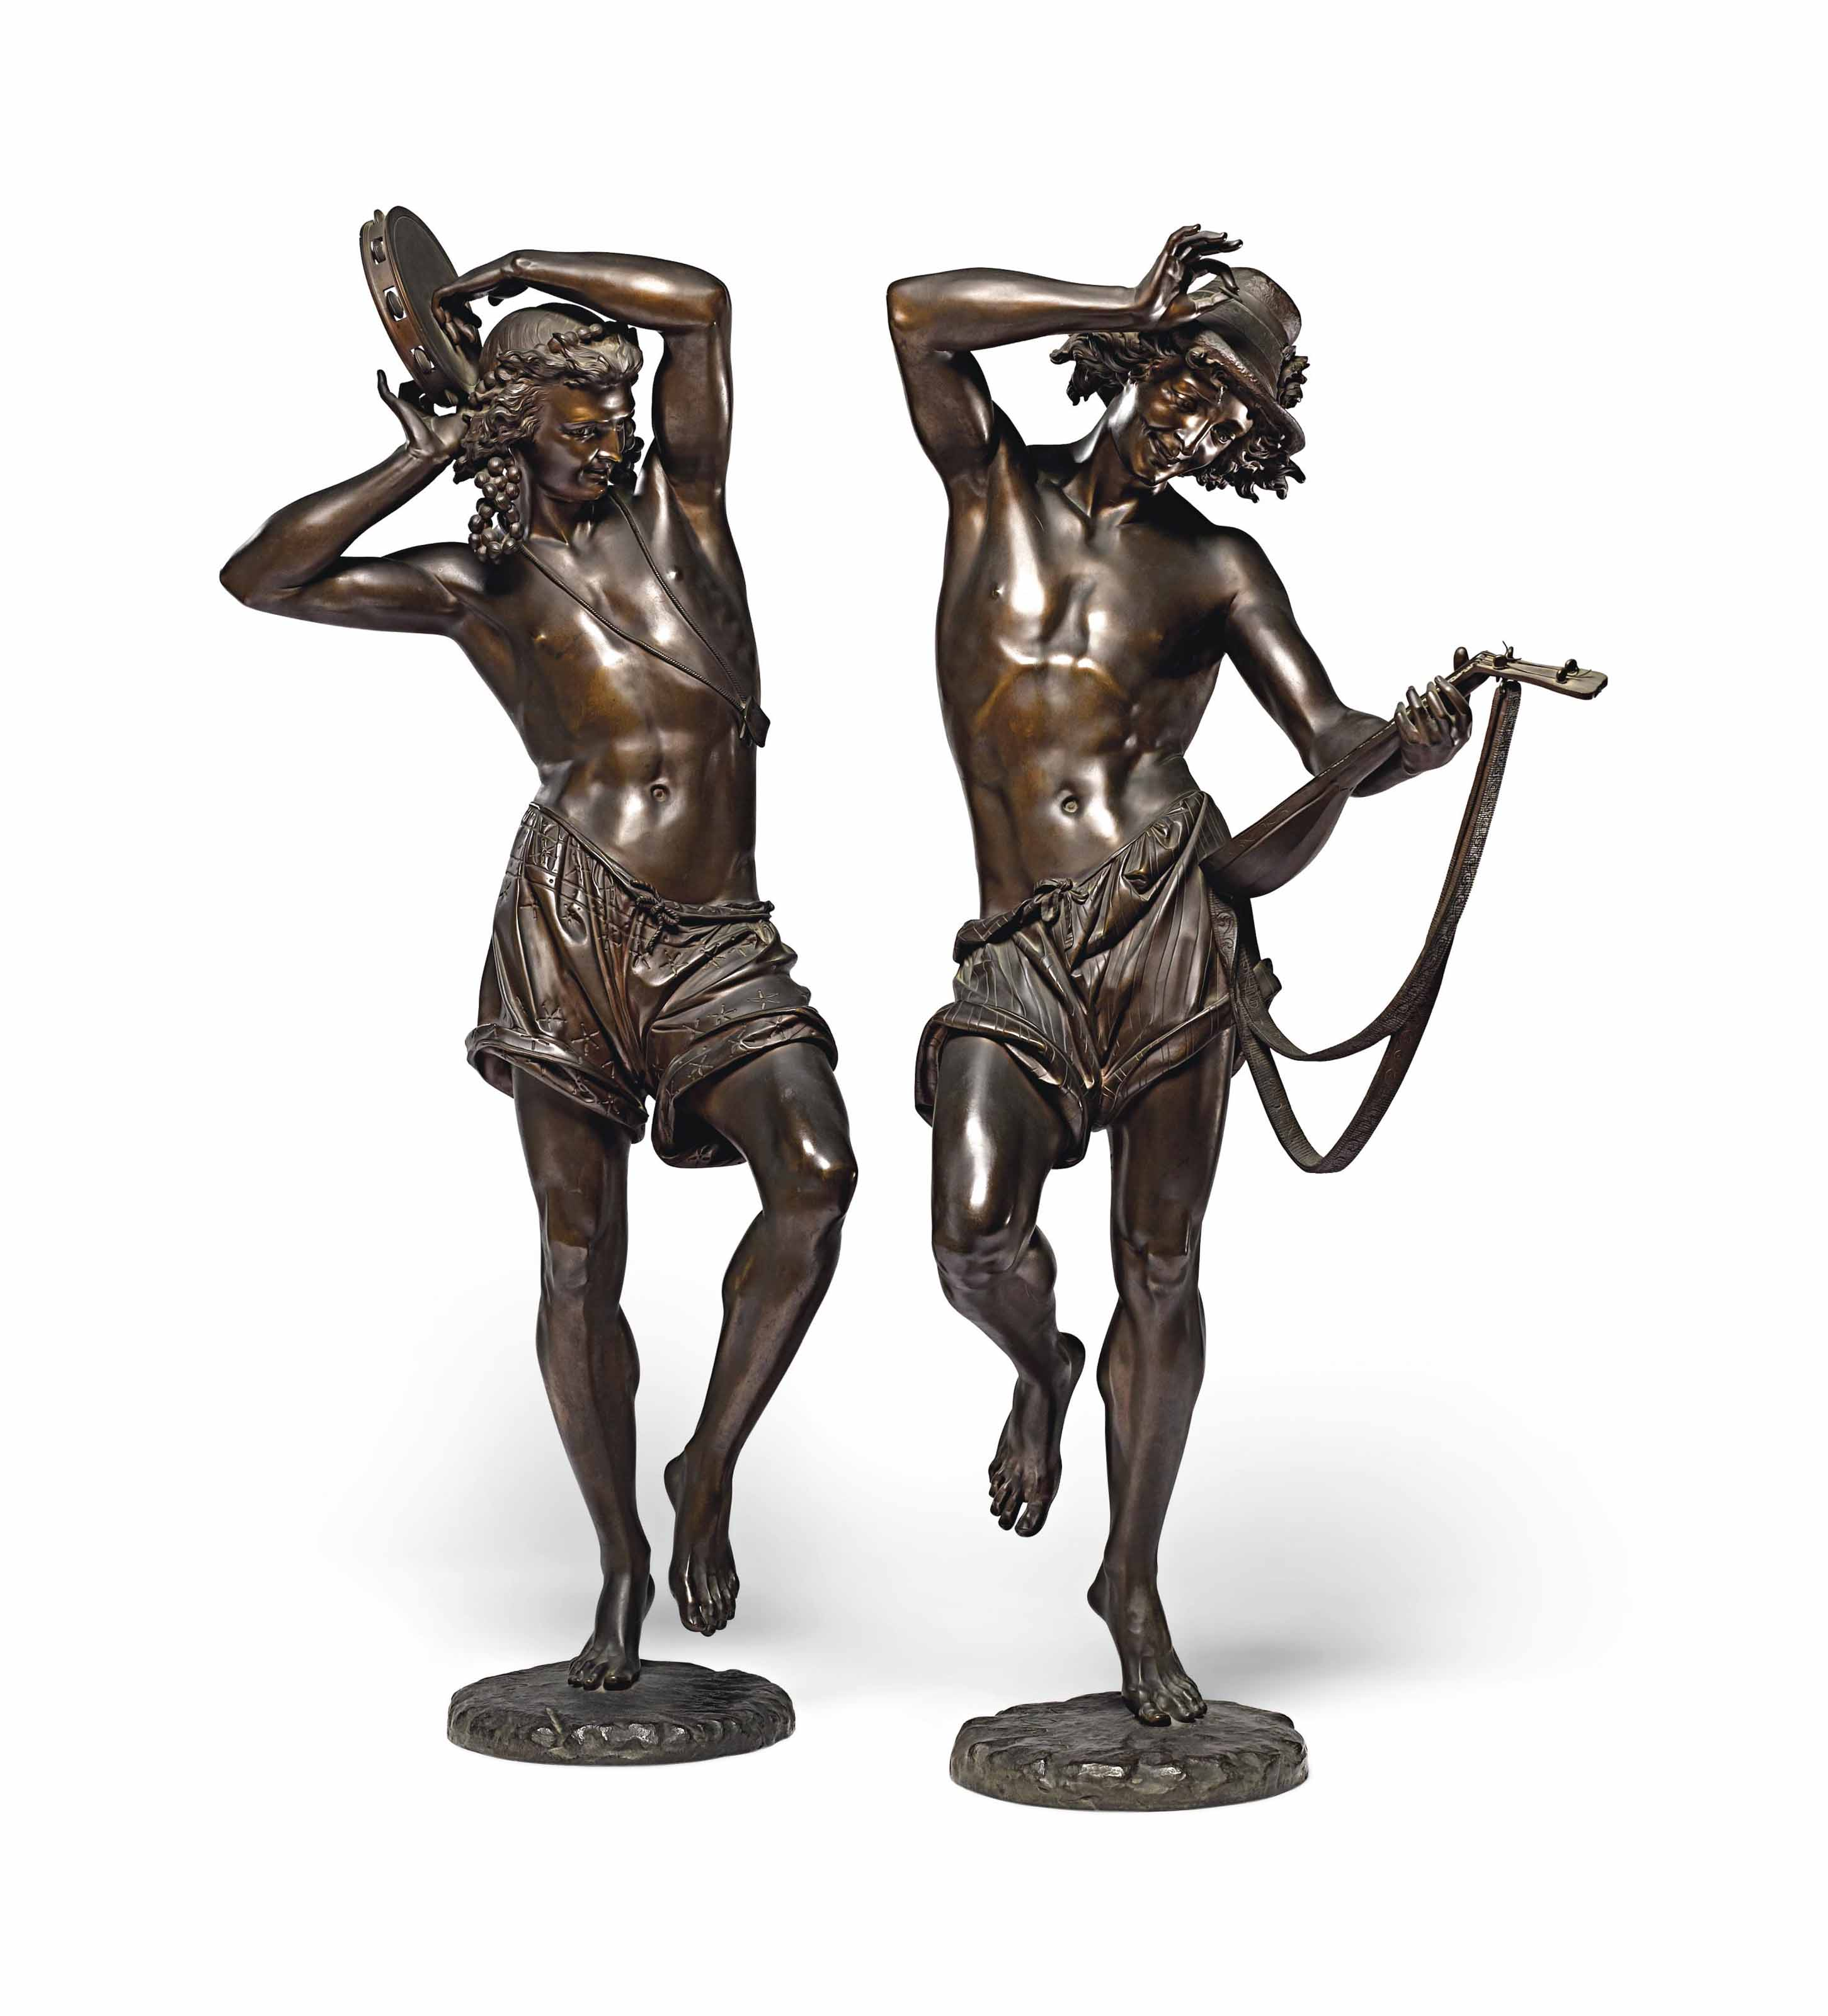 A PAIR OF FRENCH PATINATED-BRONZE FIGURES ENTITLED 'DANSEURS NAPOLITAINS'